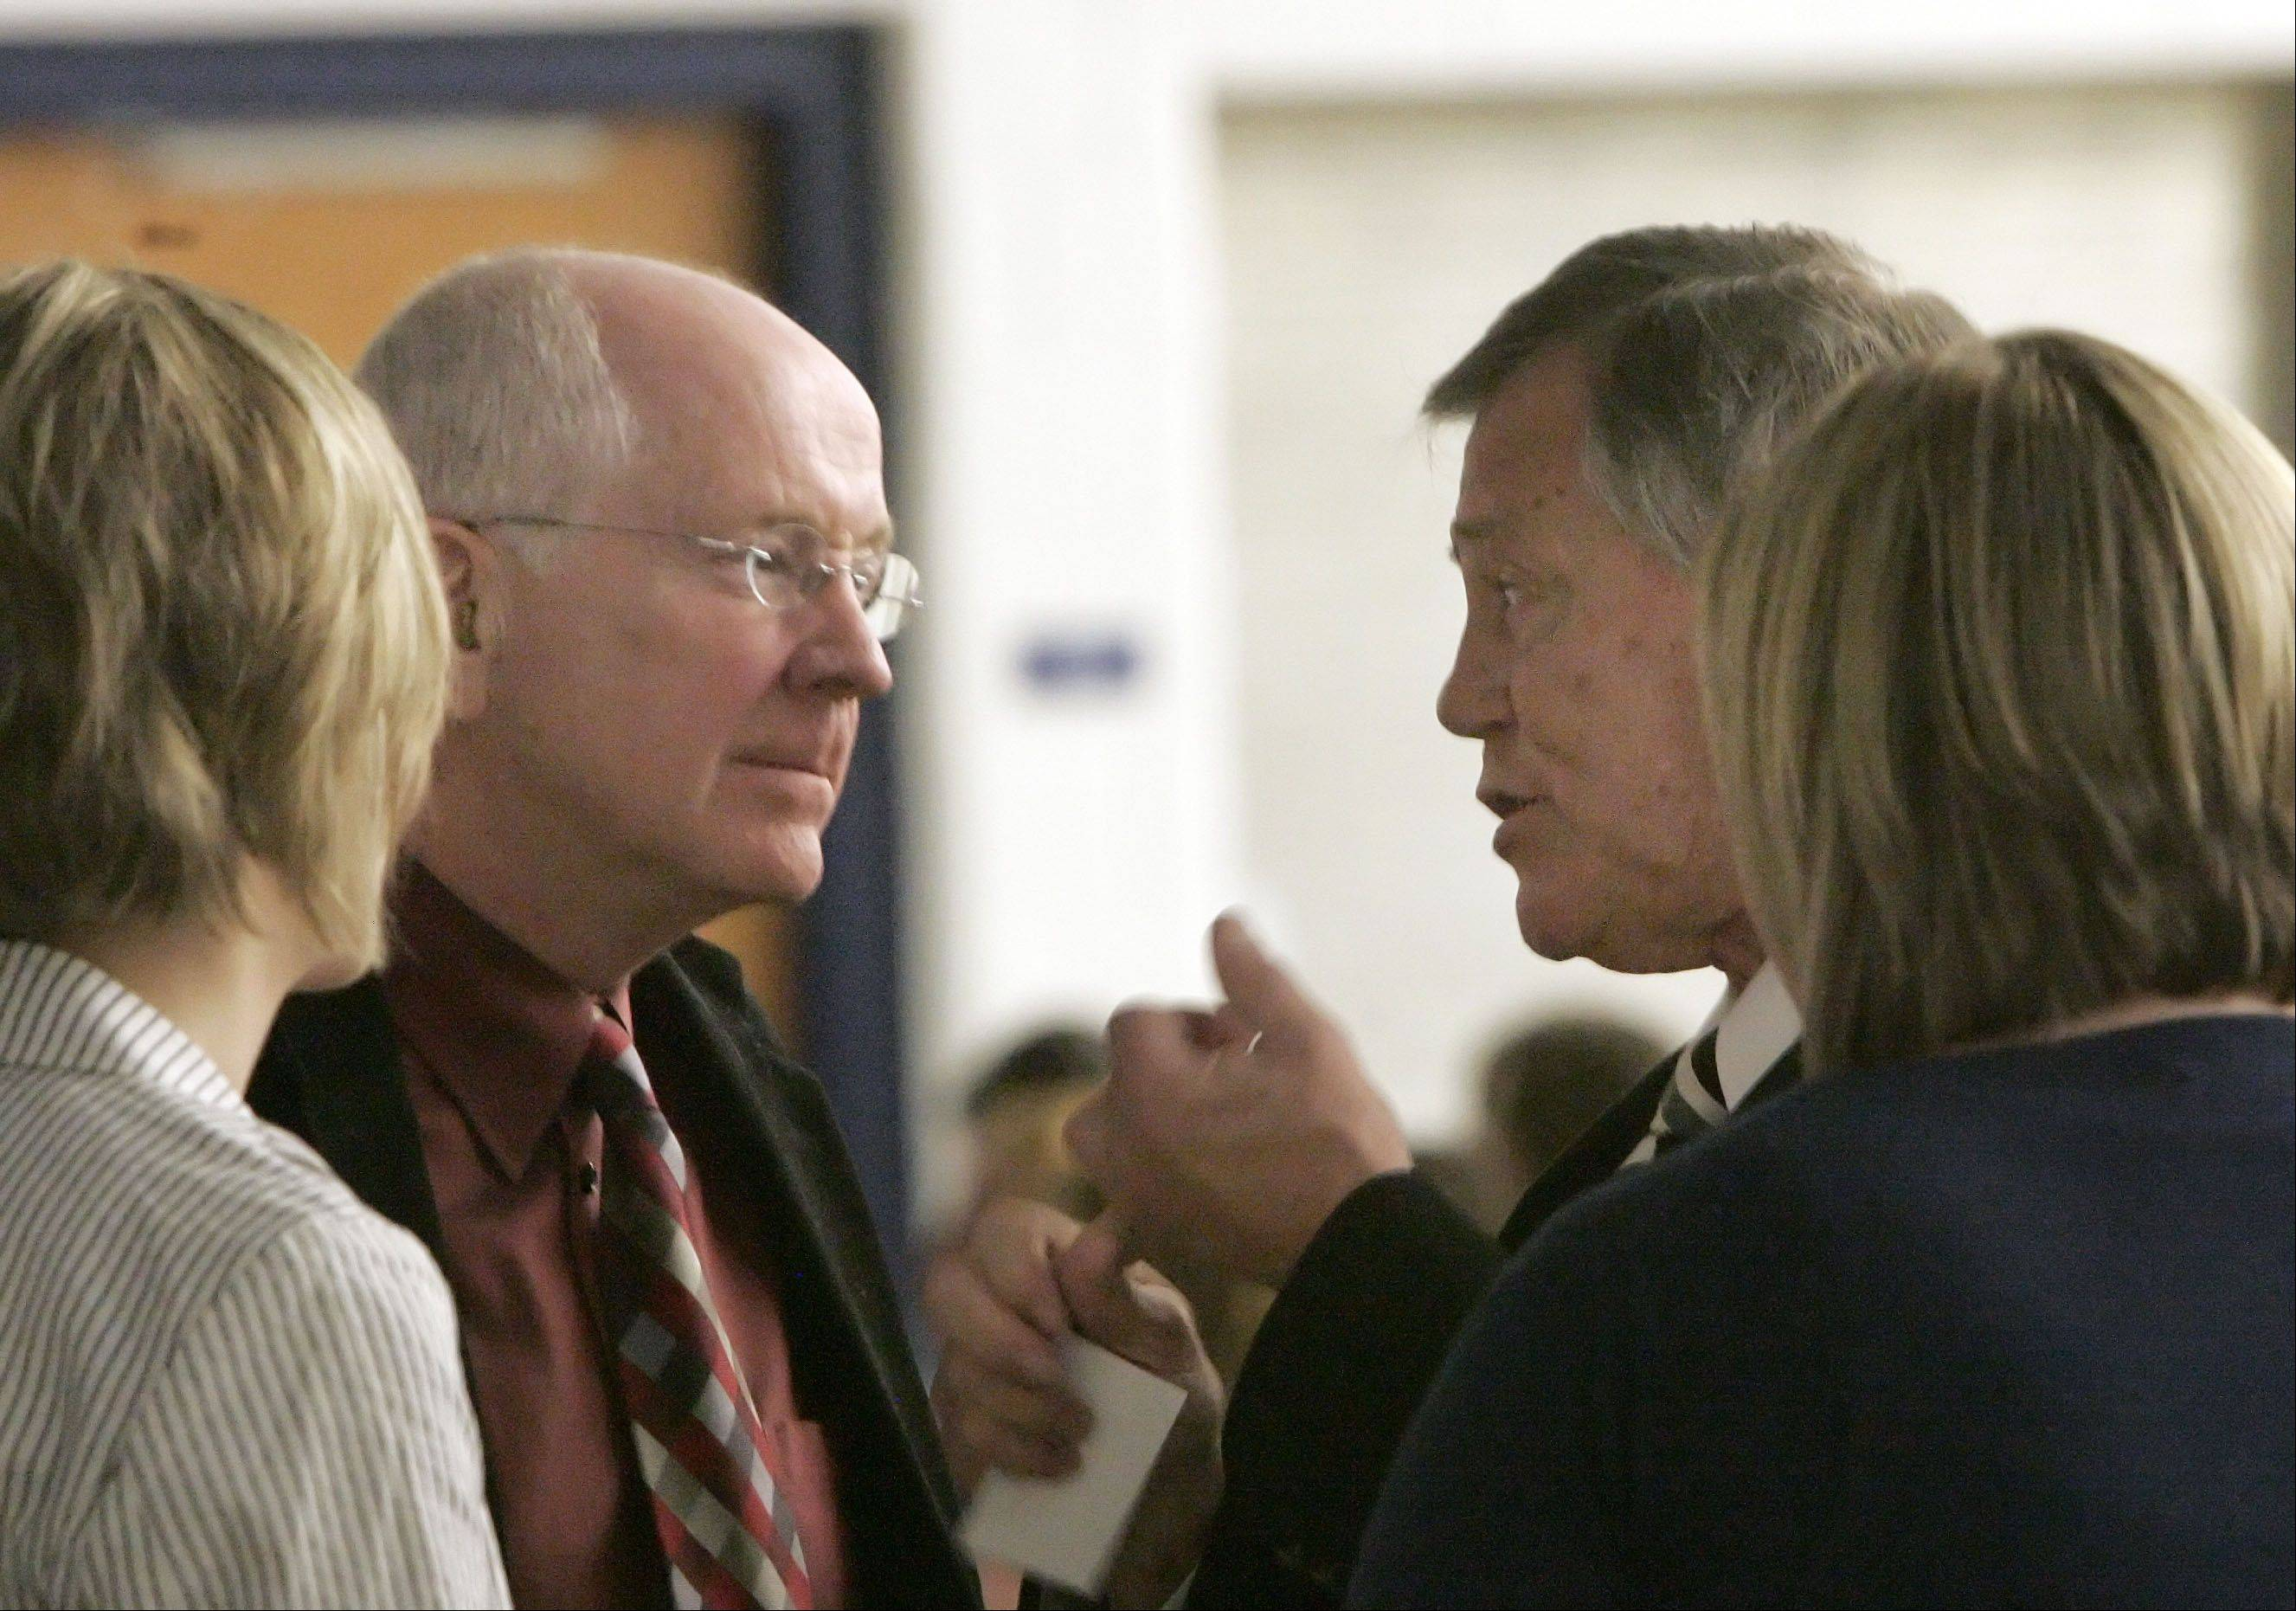 Minneapolis psychologist Dr. David Walsh, left, and Bart Teal, founder of Blue Ribbon Schools of Excellence Inc. in South Carolina, talk during a conference at Grayslake Elementary District 46's Park Campus in April. Teal's conference may result in a $5,000 profit for District 46.